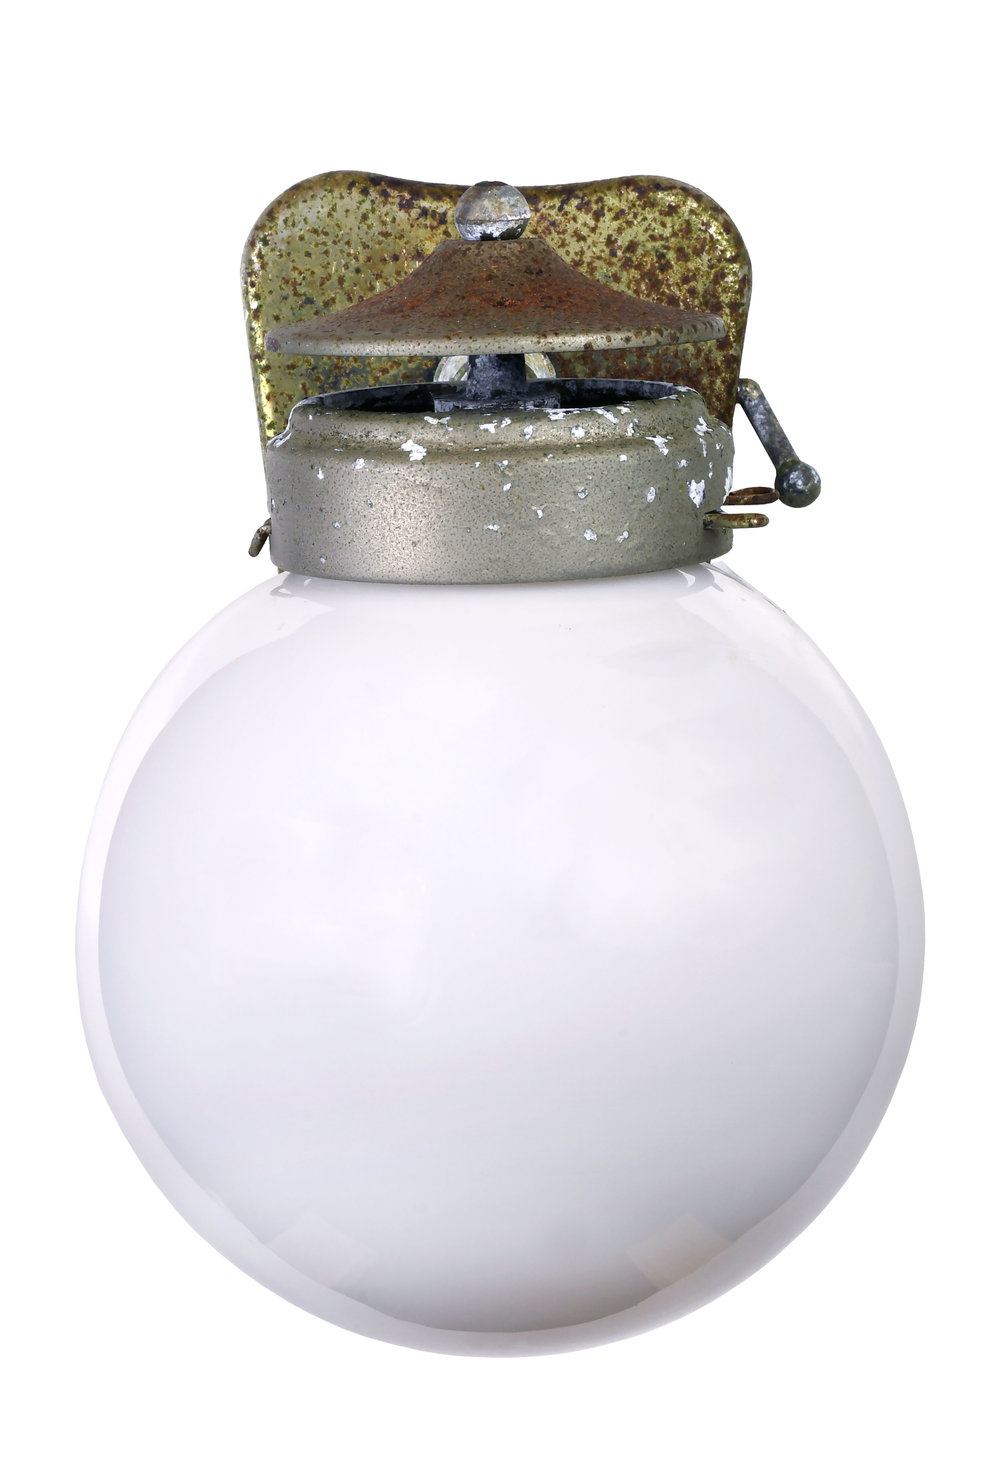 47489-kerosene-sconce-with-globe-front-view.jpg